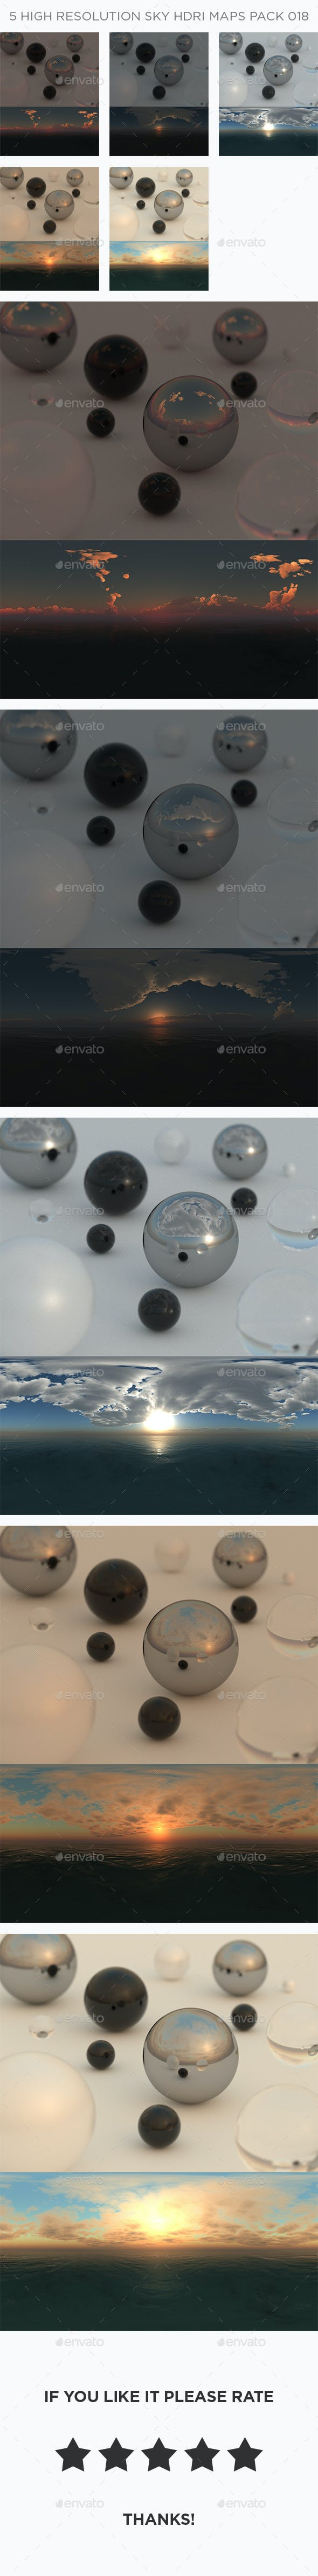 5 High Resolution Sky HDRi Maps Pack 018 - 3DOcean Item for Sale